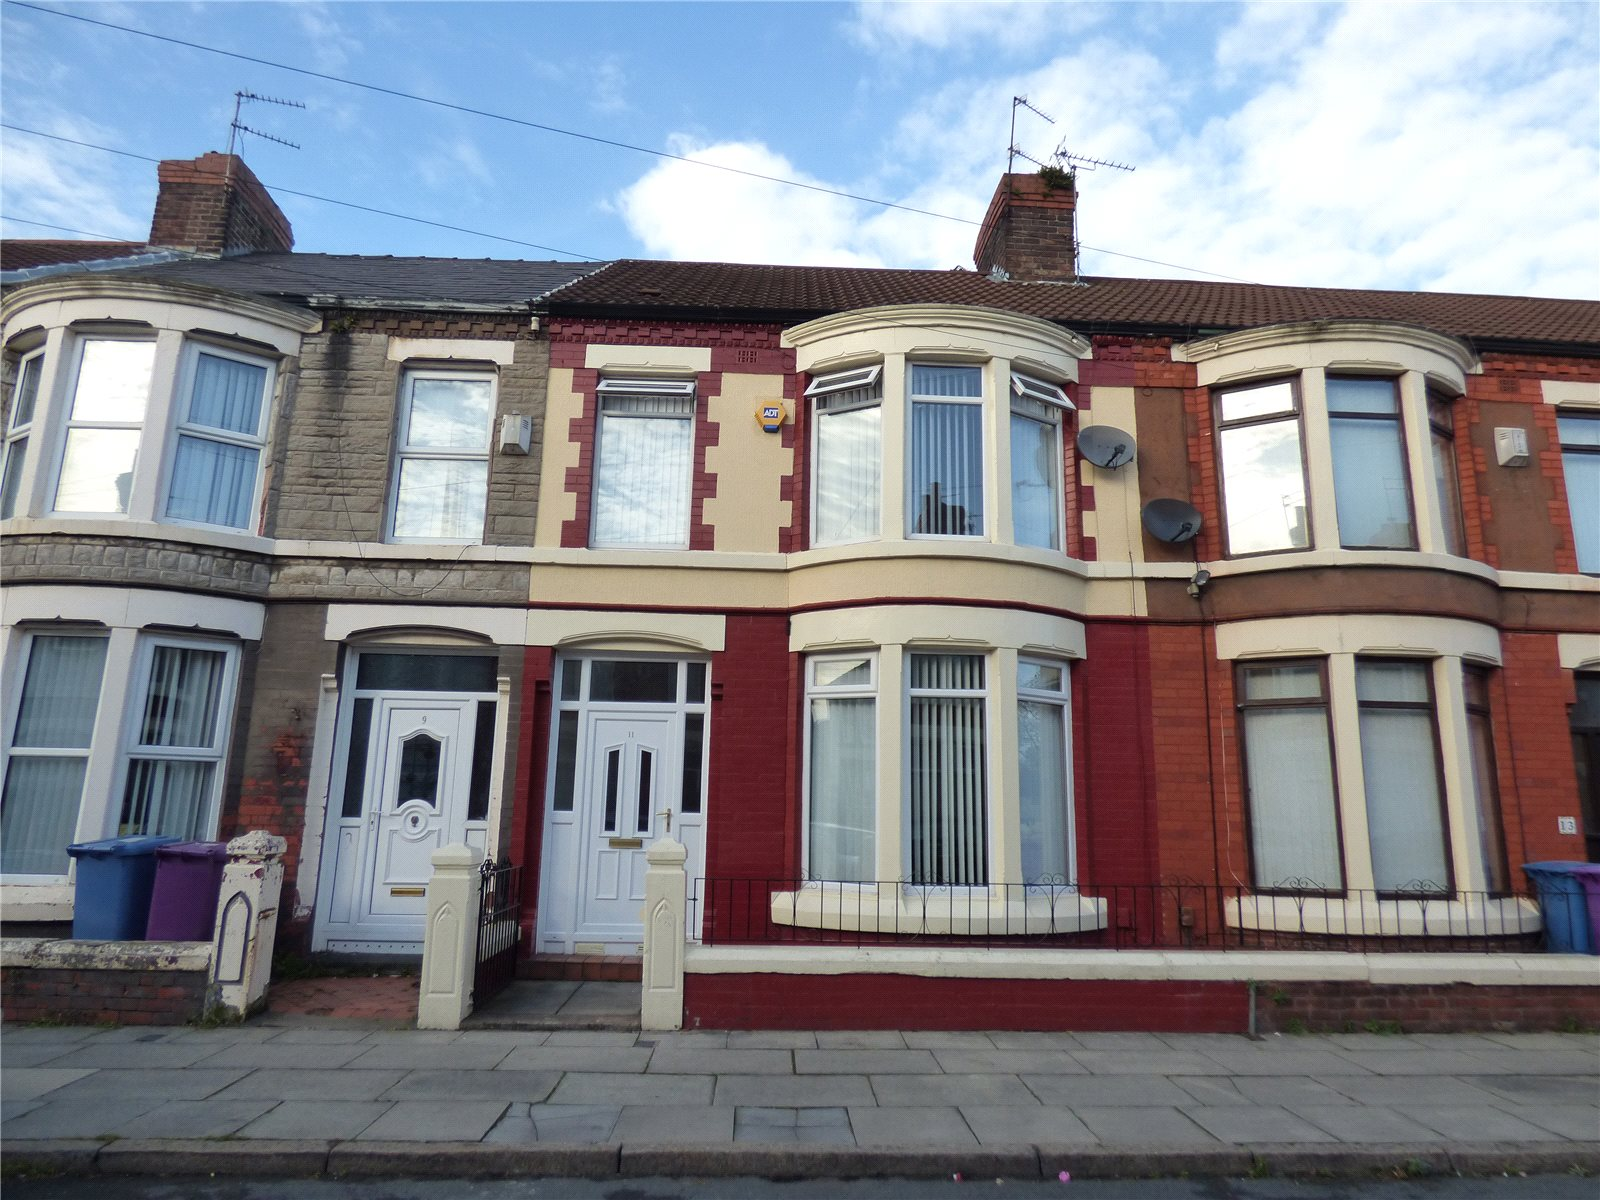 3 Bedrooms Terraced House for sale in Heyburn Road, Liverpool, Merseyside, L13